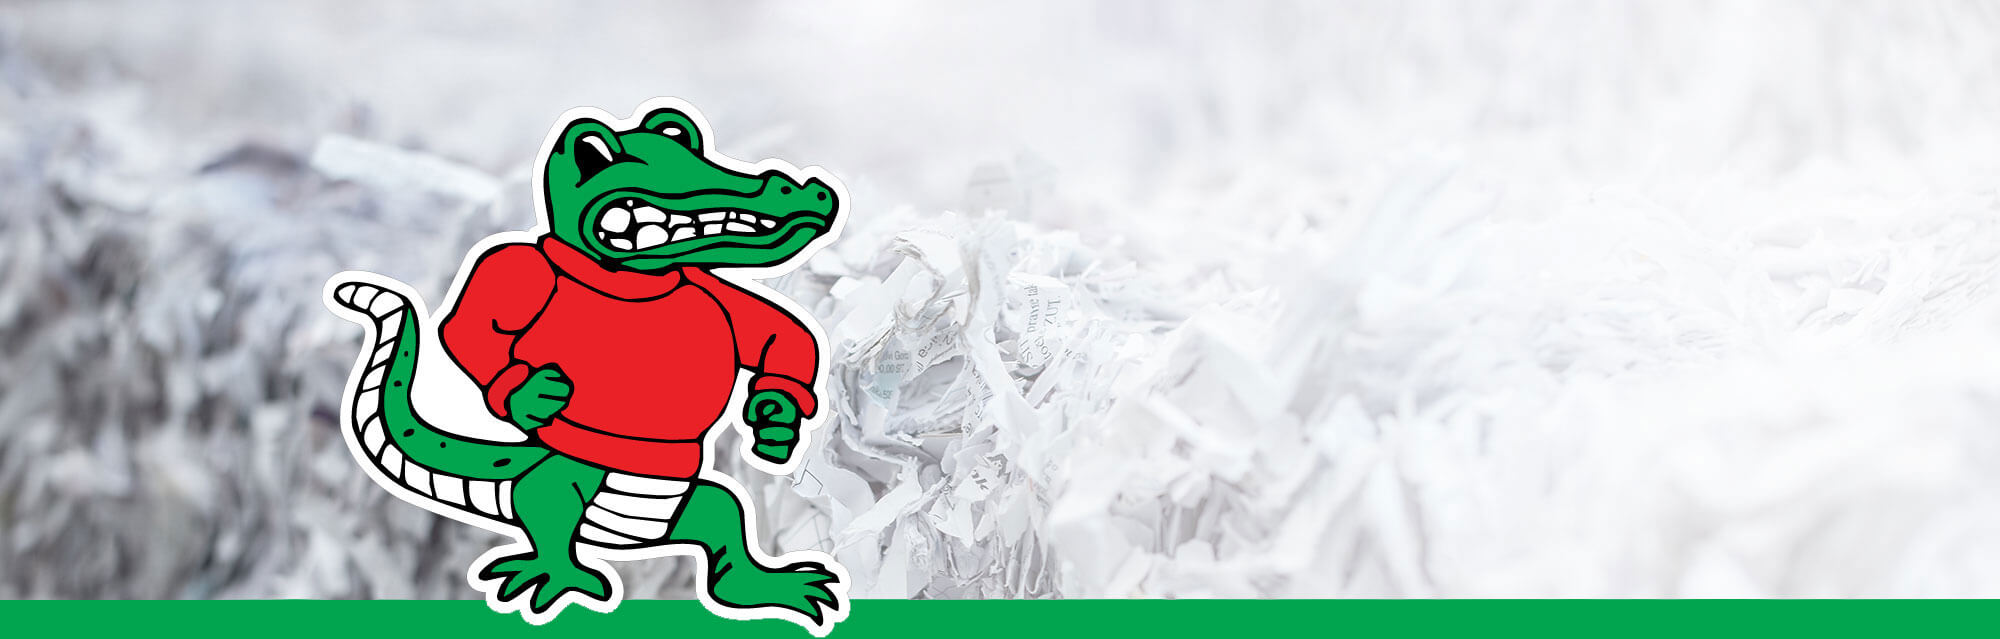 gator shredding banner